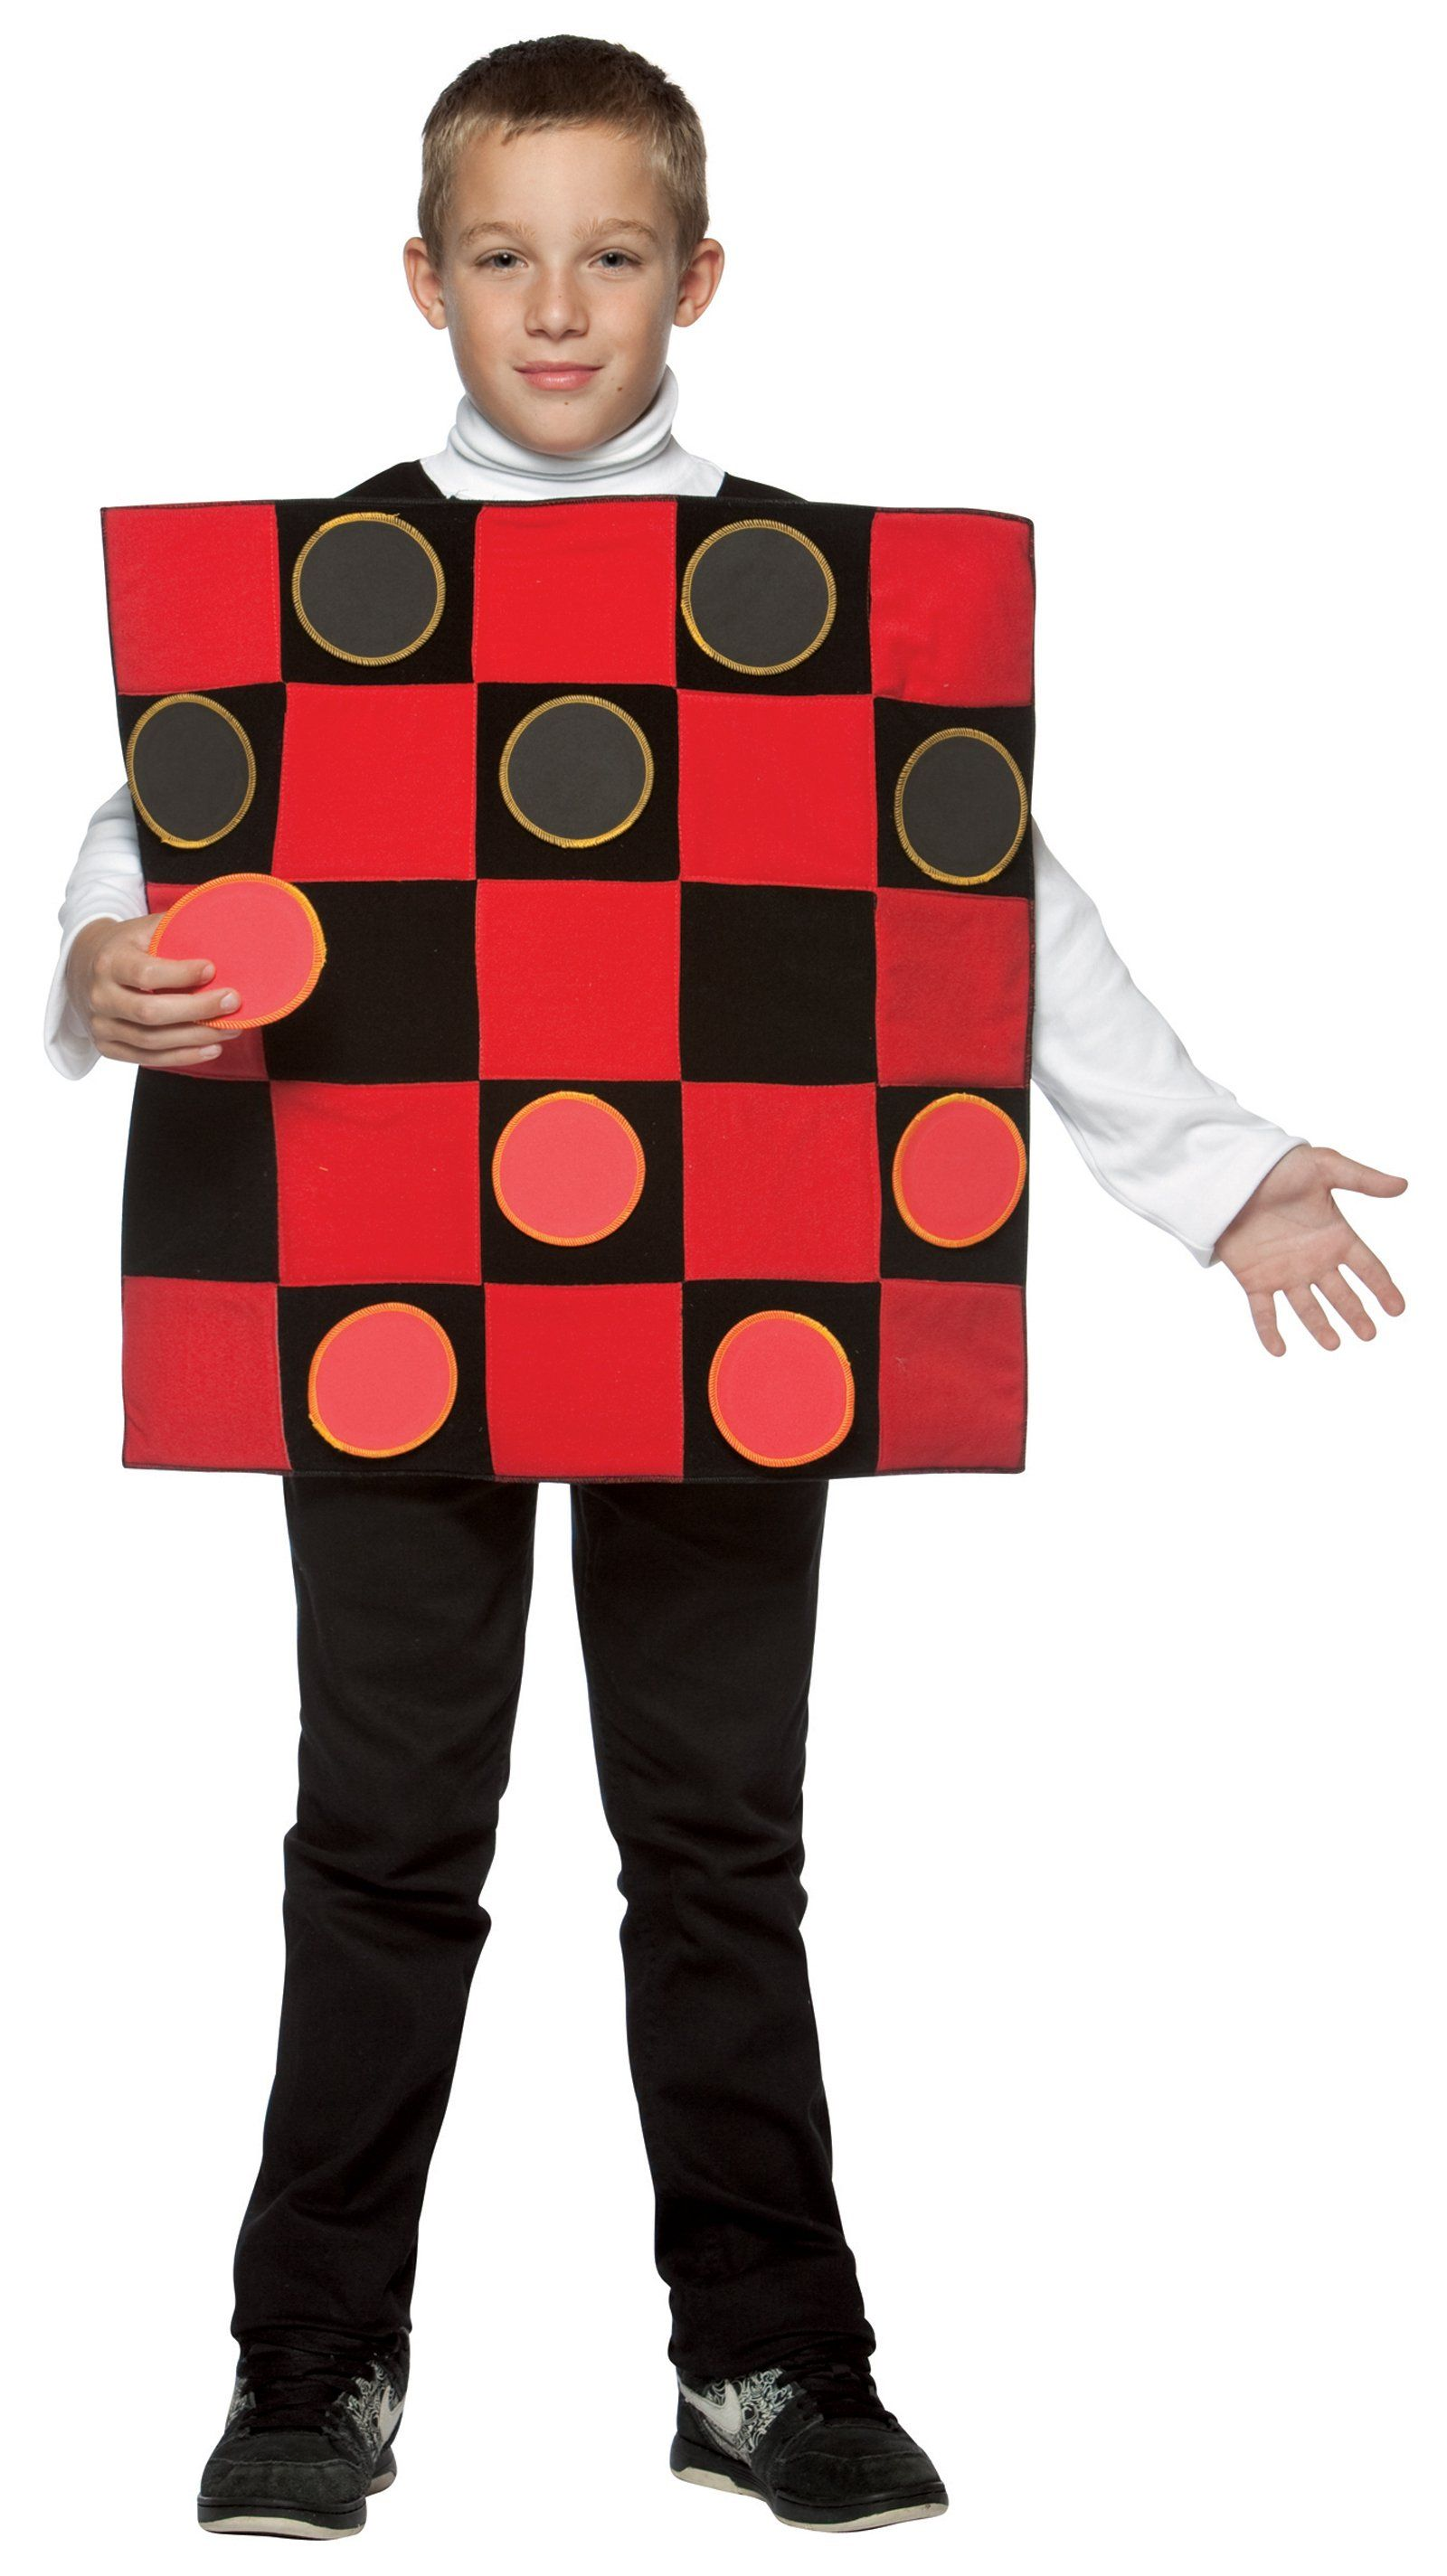 checker board connect 4  chess  sorry  candyland